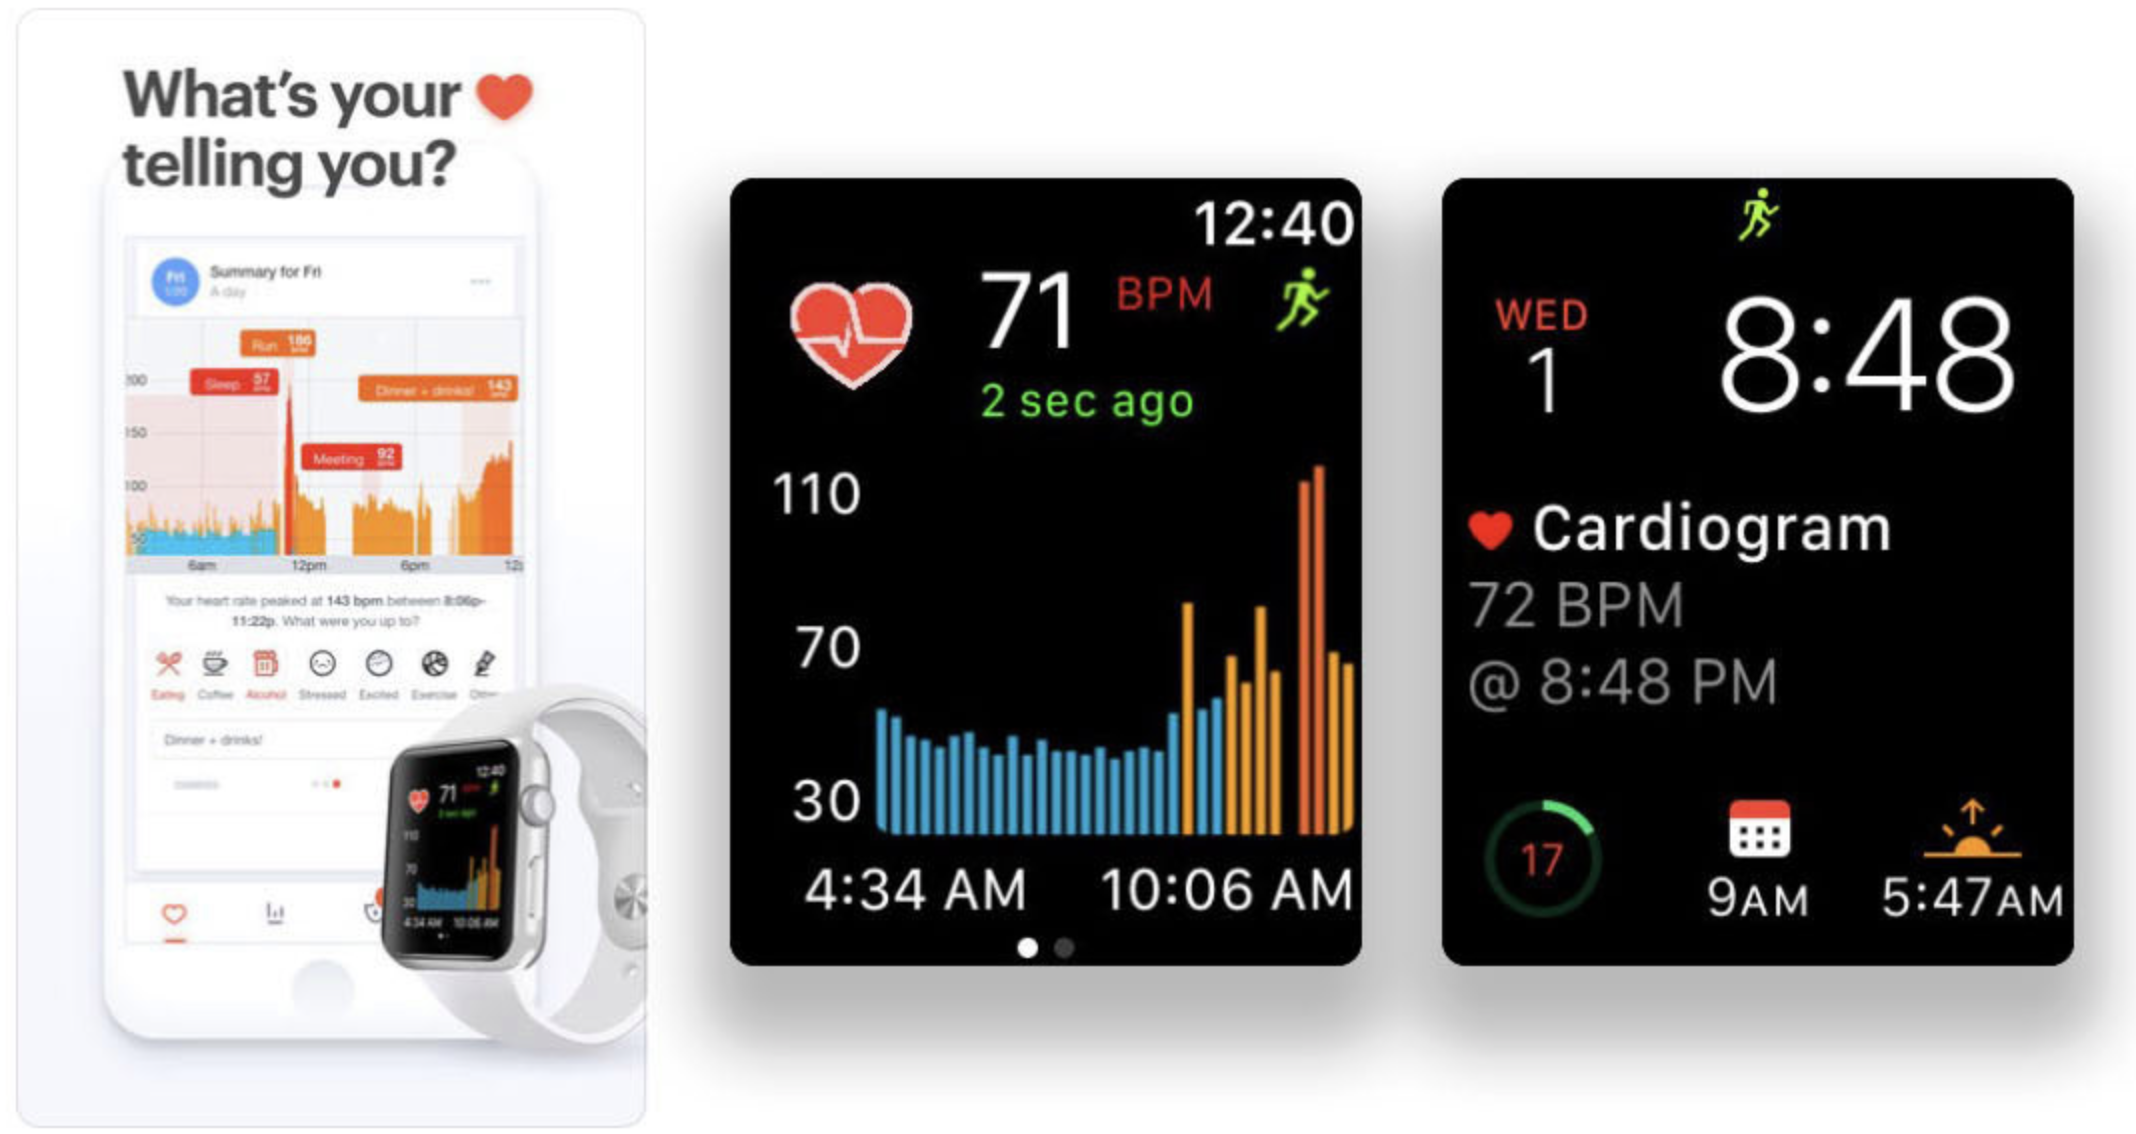 Cardiogram: Heart Rate Monitor - Watchlabor